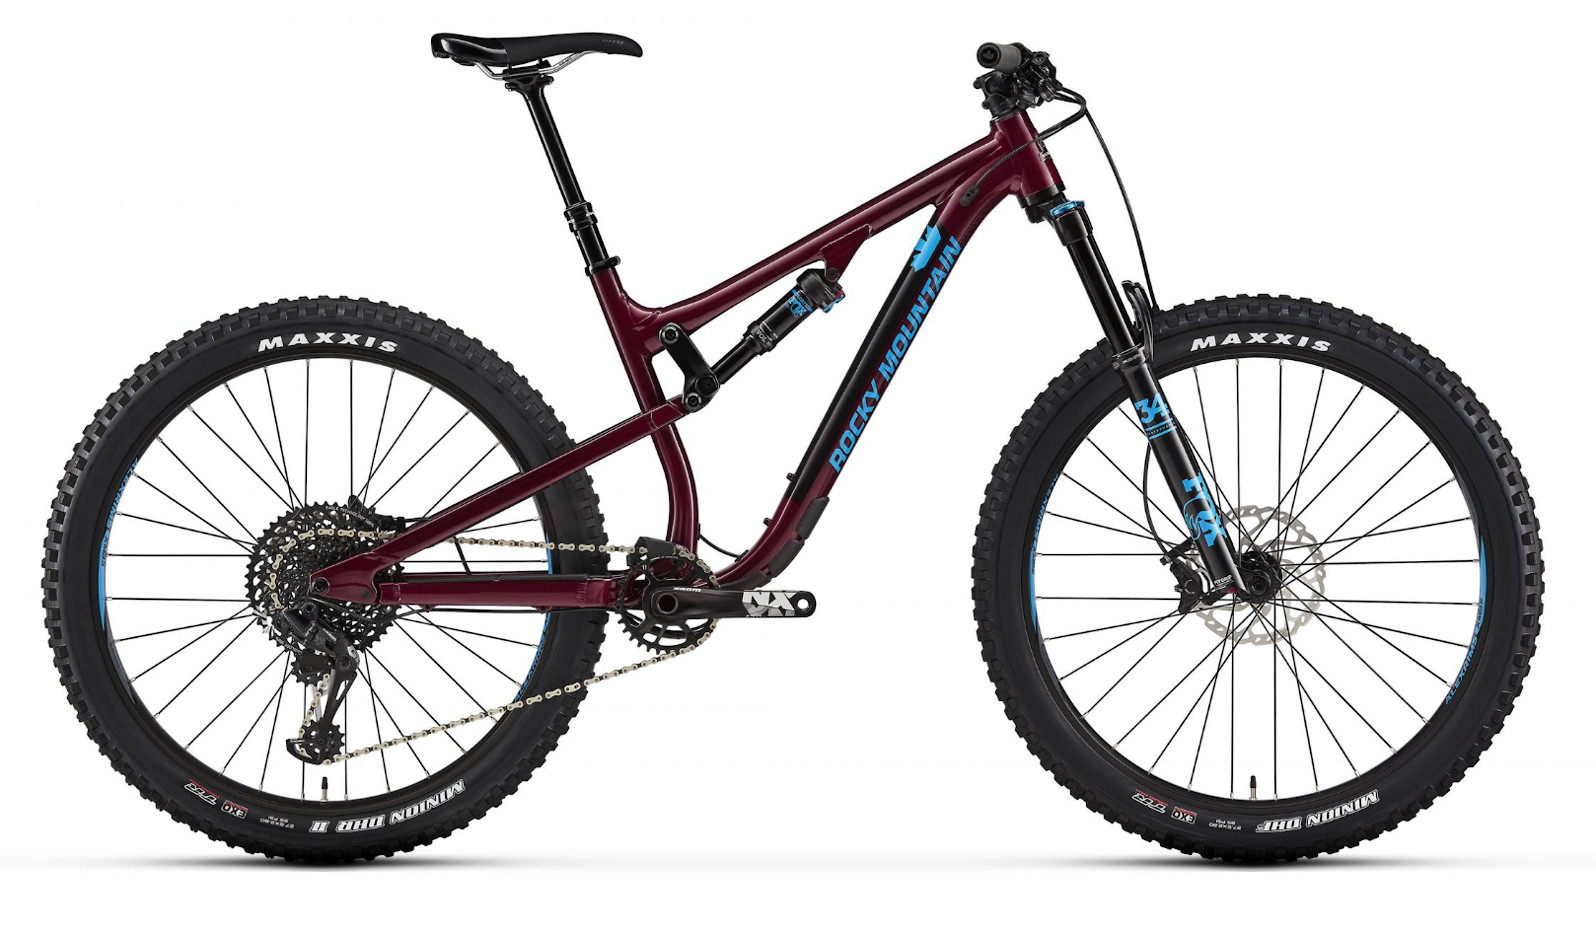 2019 Rocky Mountain Pipeline Alloy 50 - Berry and blue